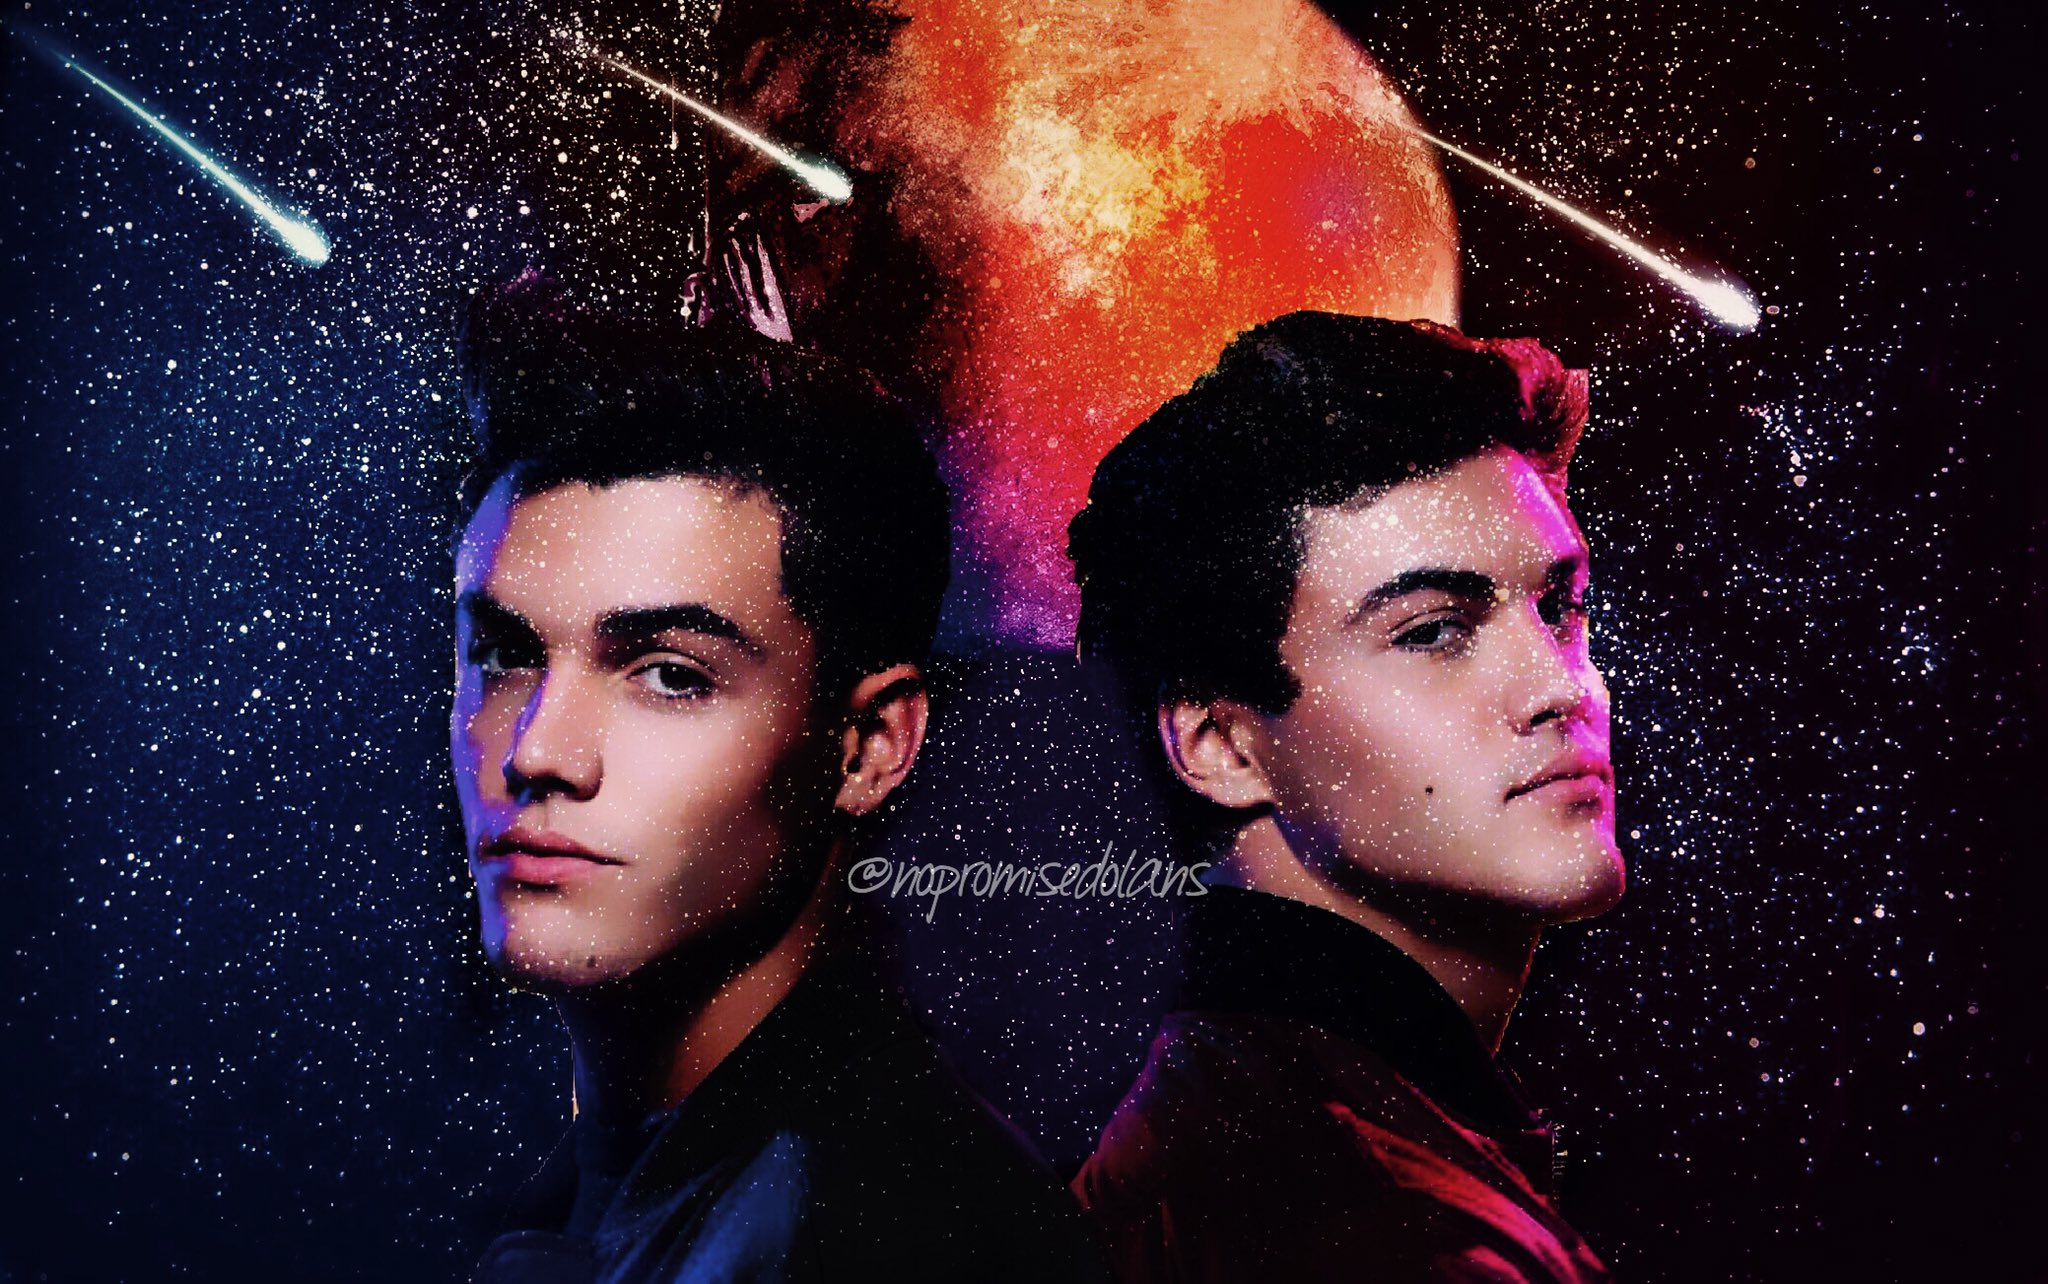 Enter galactic you and me   @EthanDolan @GraysonDolan https://t.co/gifiea3Fno